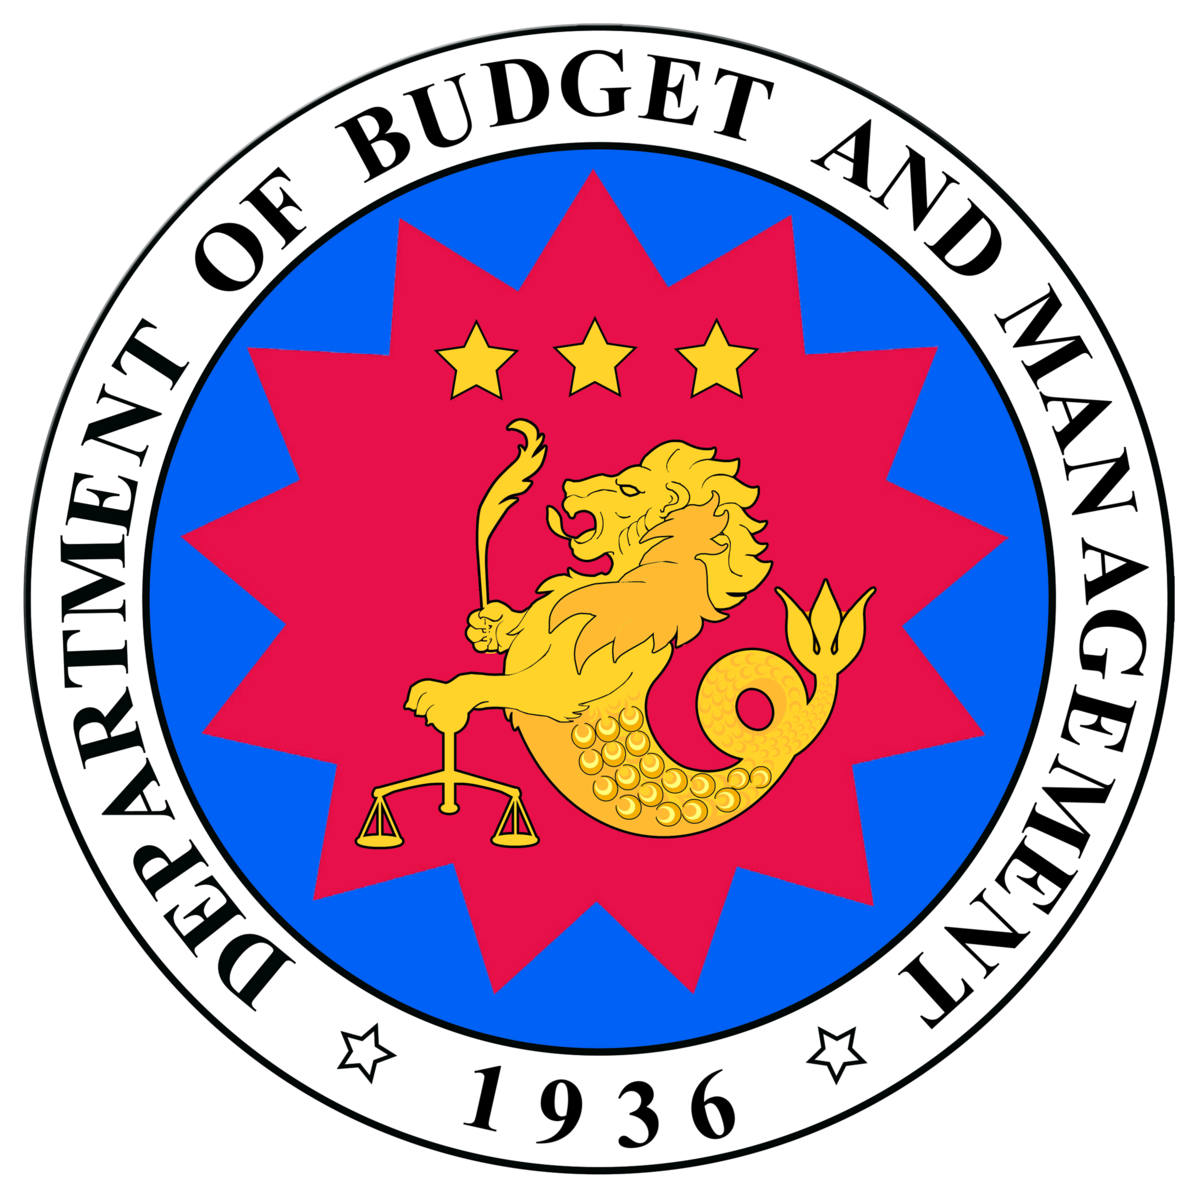 Department of Budget and Management Seal DBM logo